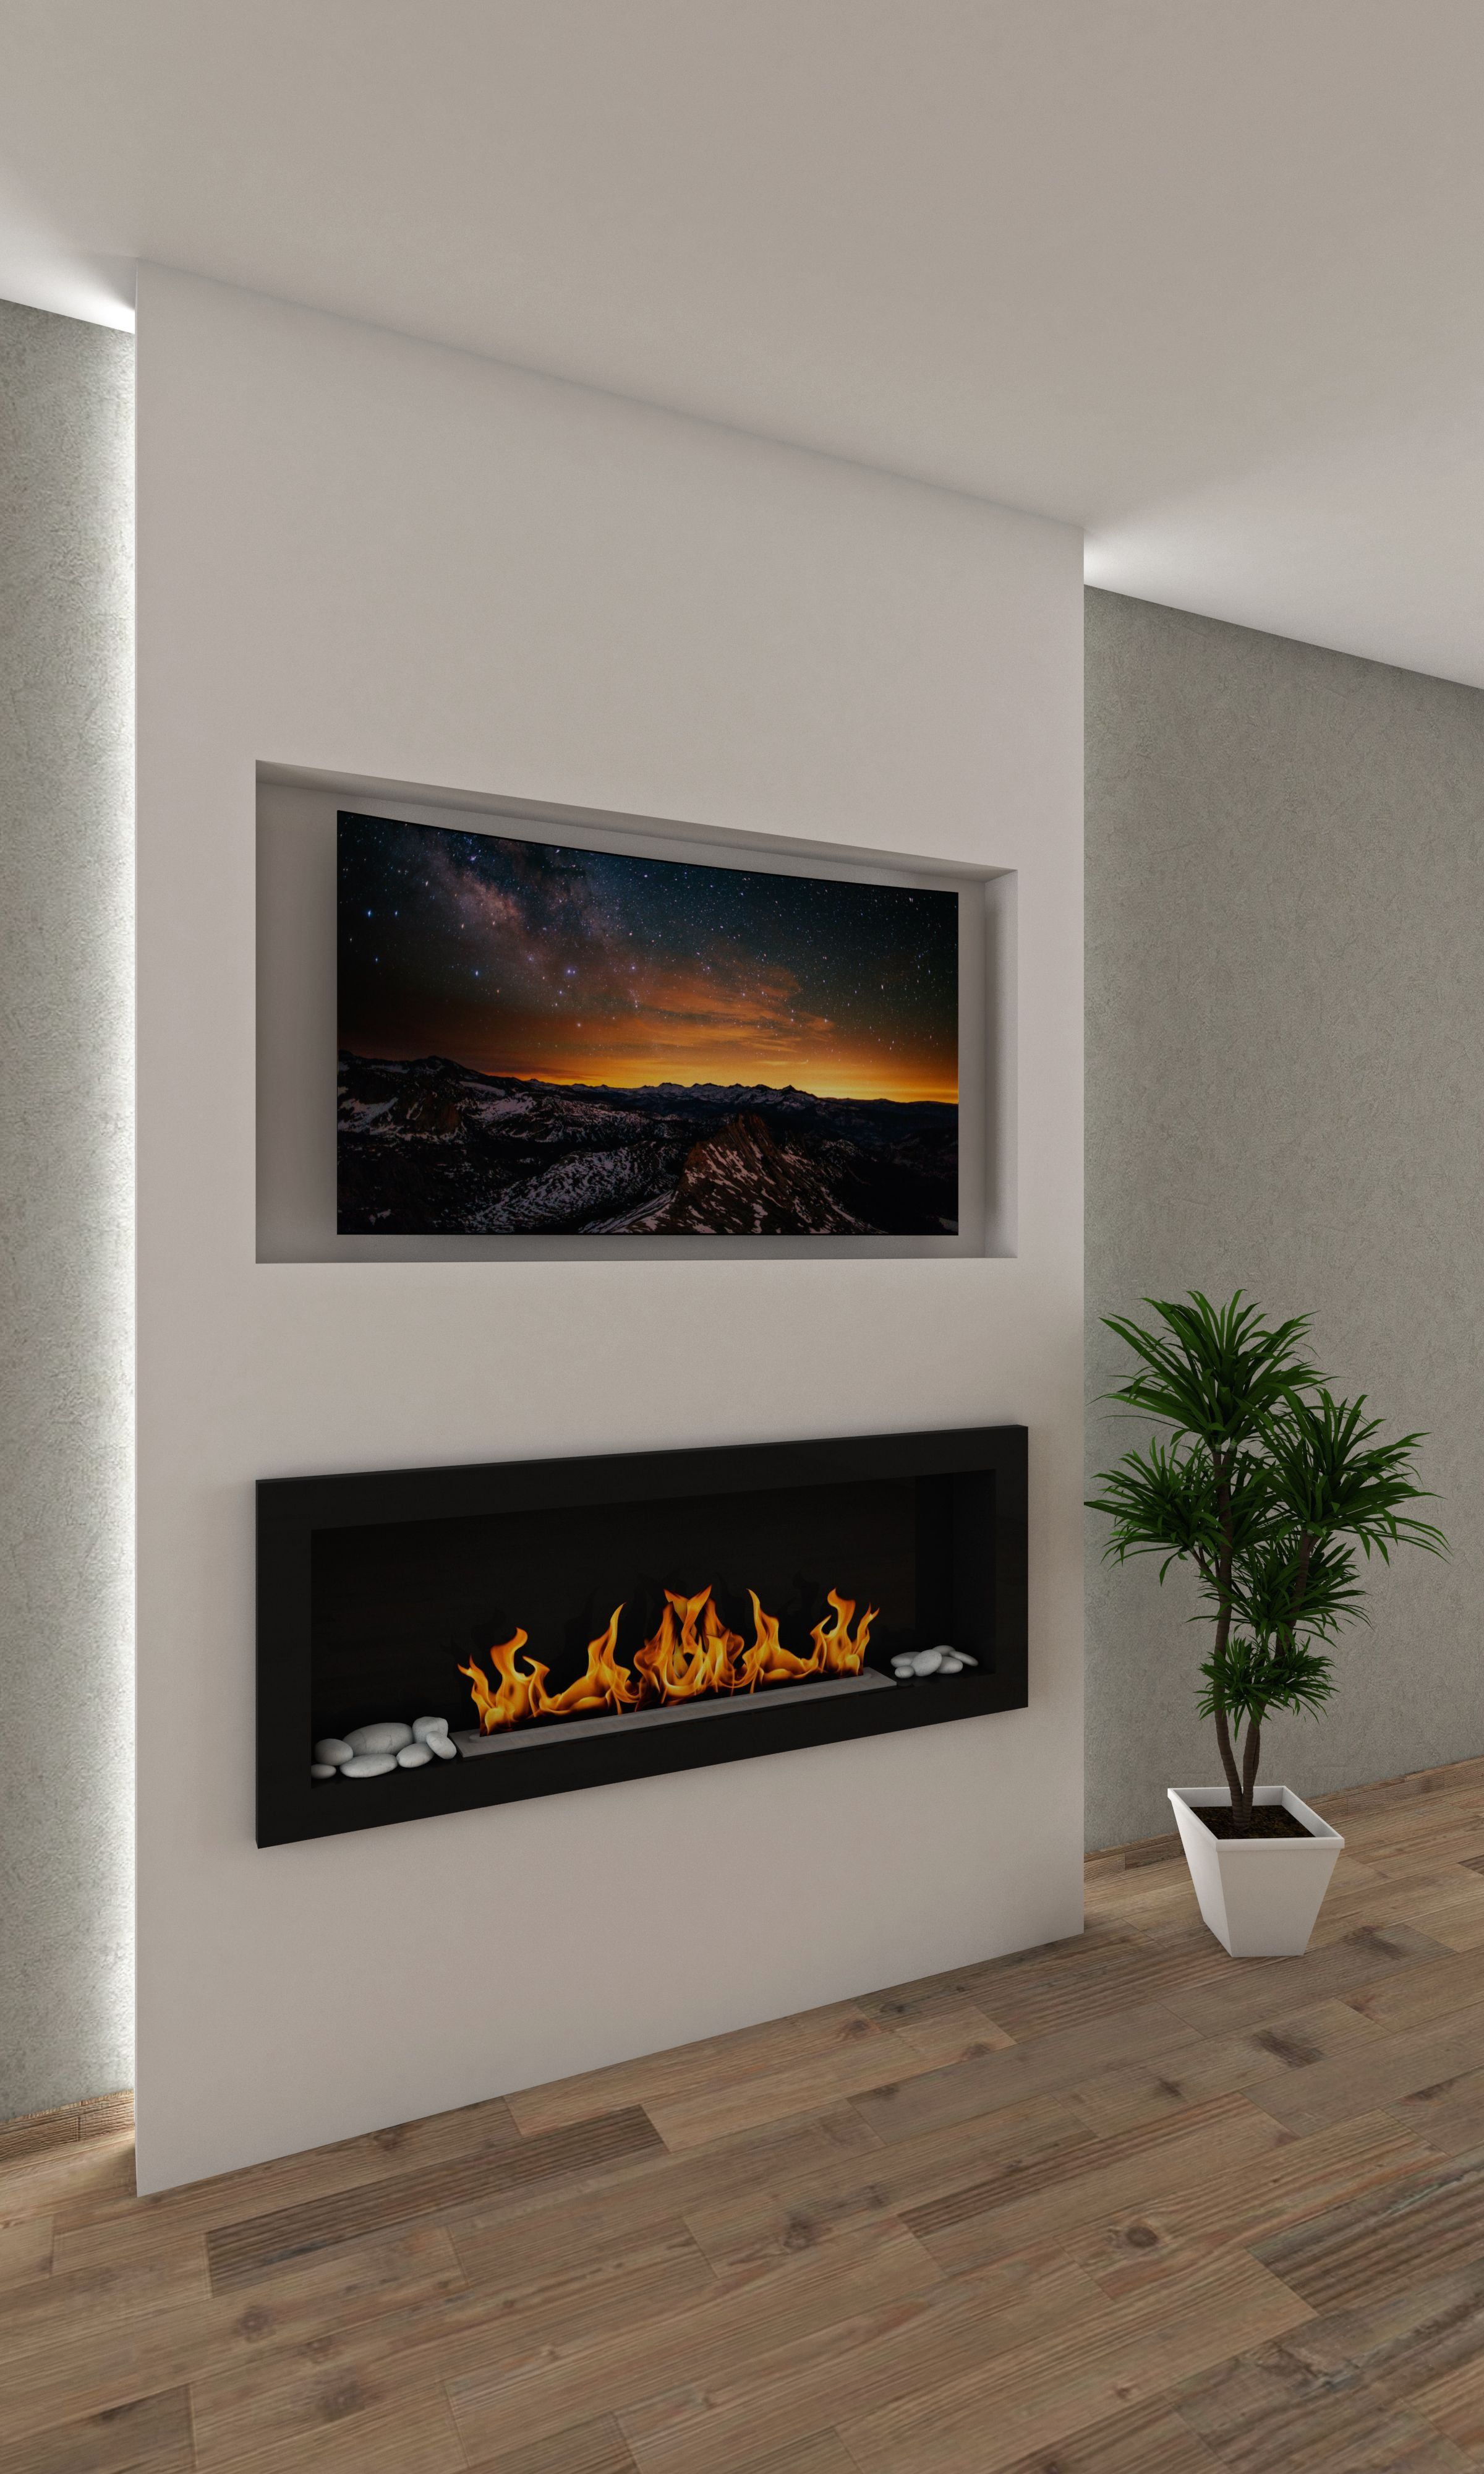 Master Bedroom Recess Tv No Surround On Wall Modern Design Home Fireplace Fireplace Wall Mount Electric Fireplace